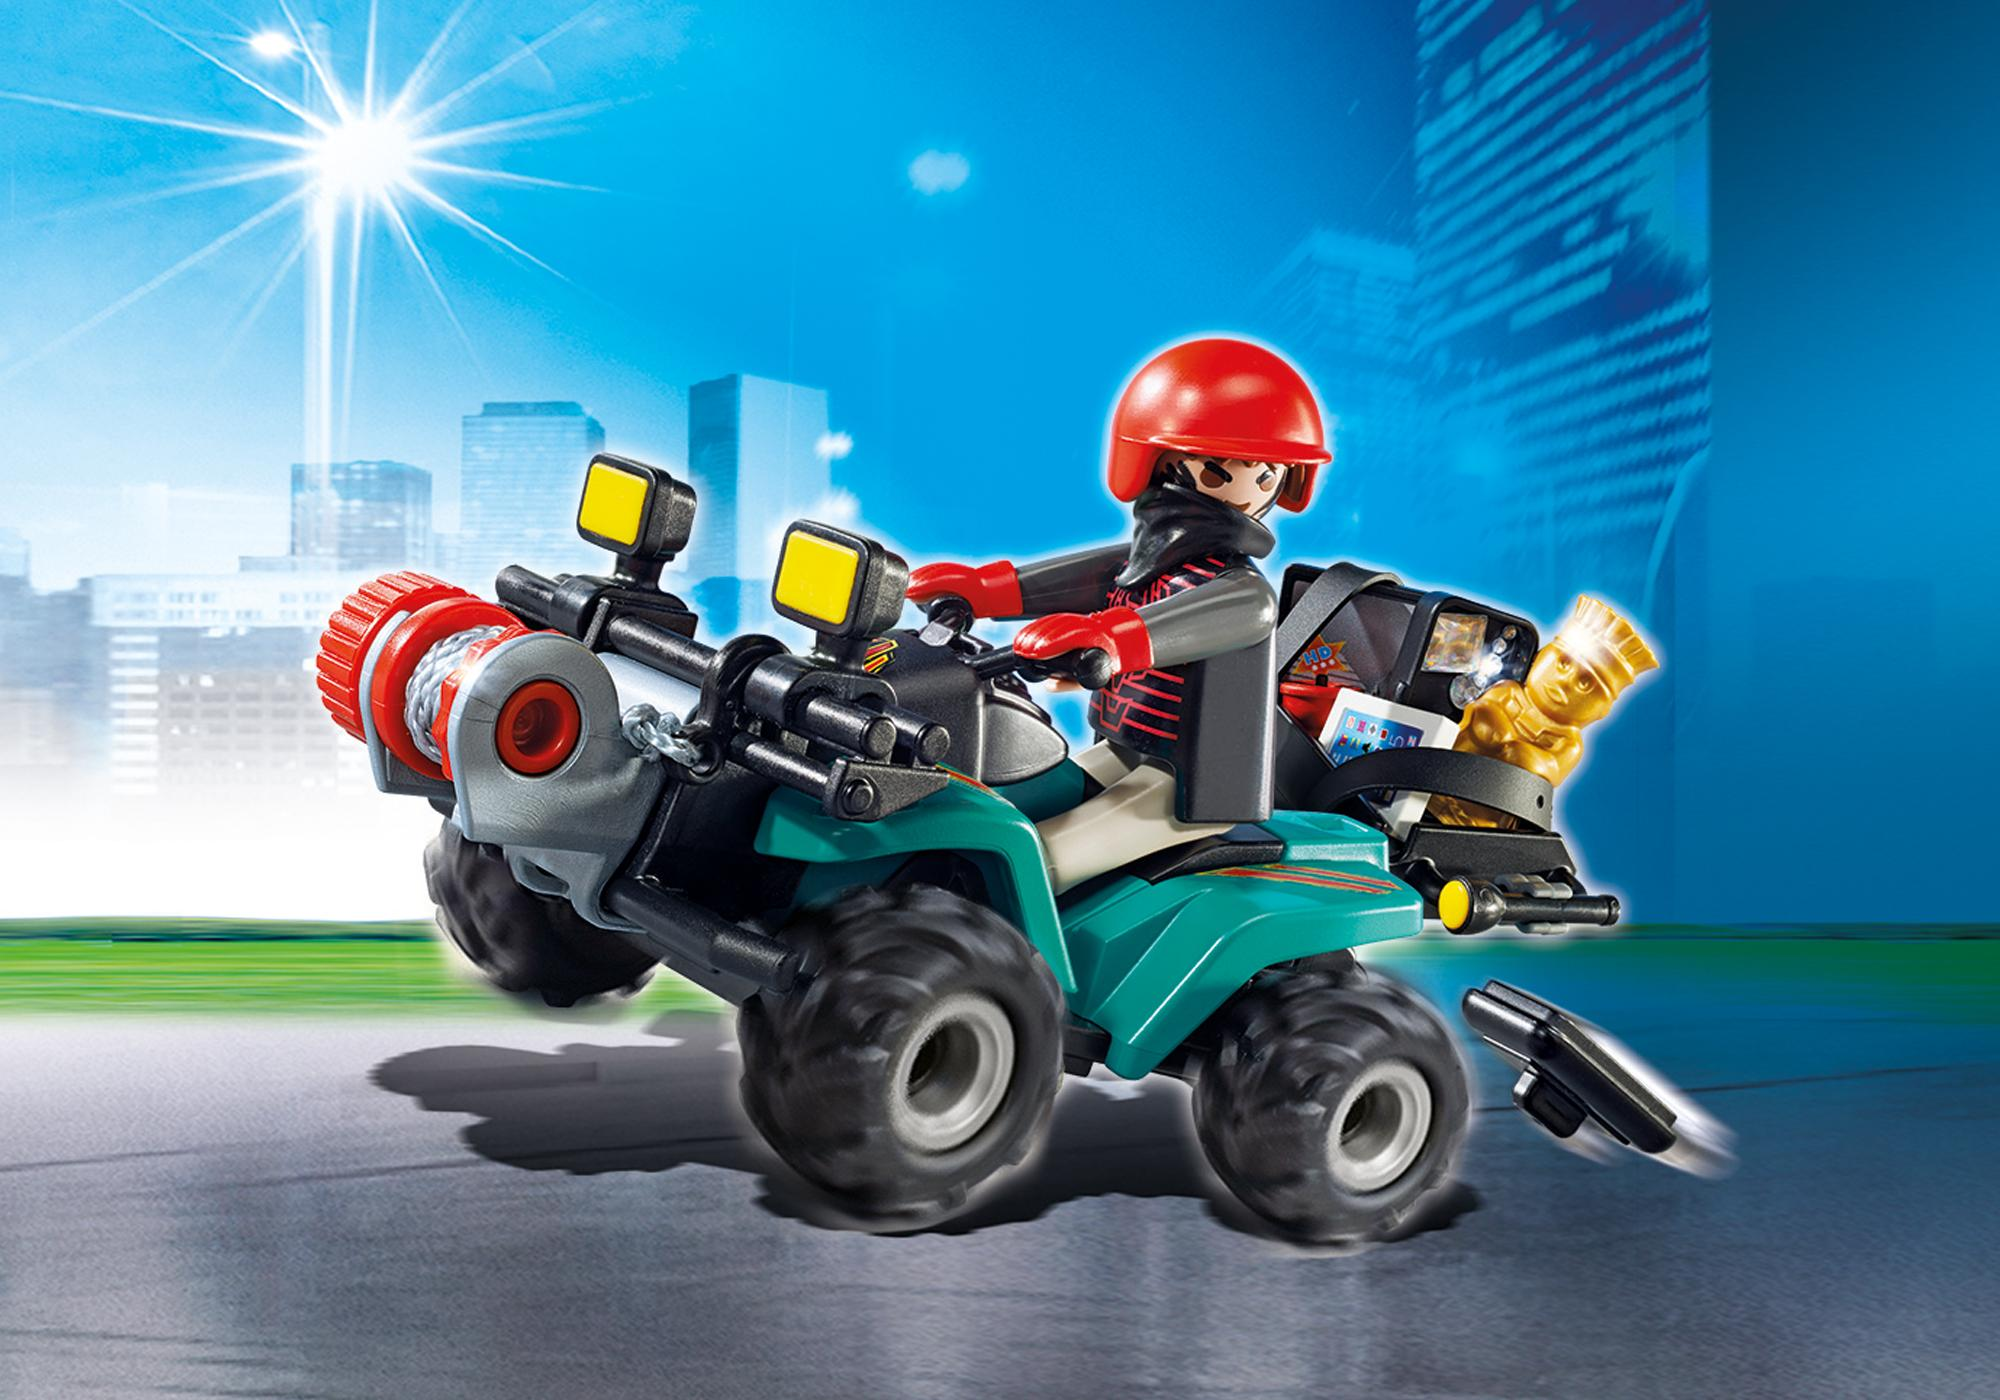 http://media.playmobil.com/i/playmobil/6879_product_detail/Quad del bandito